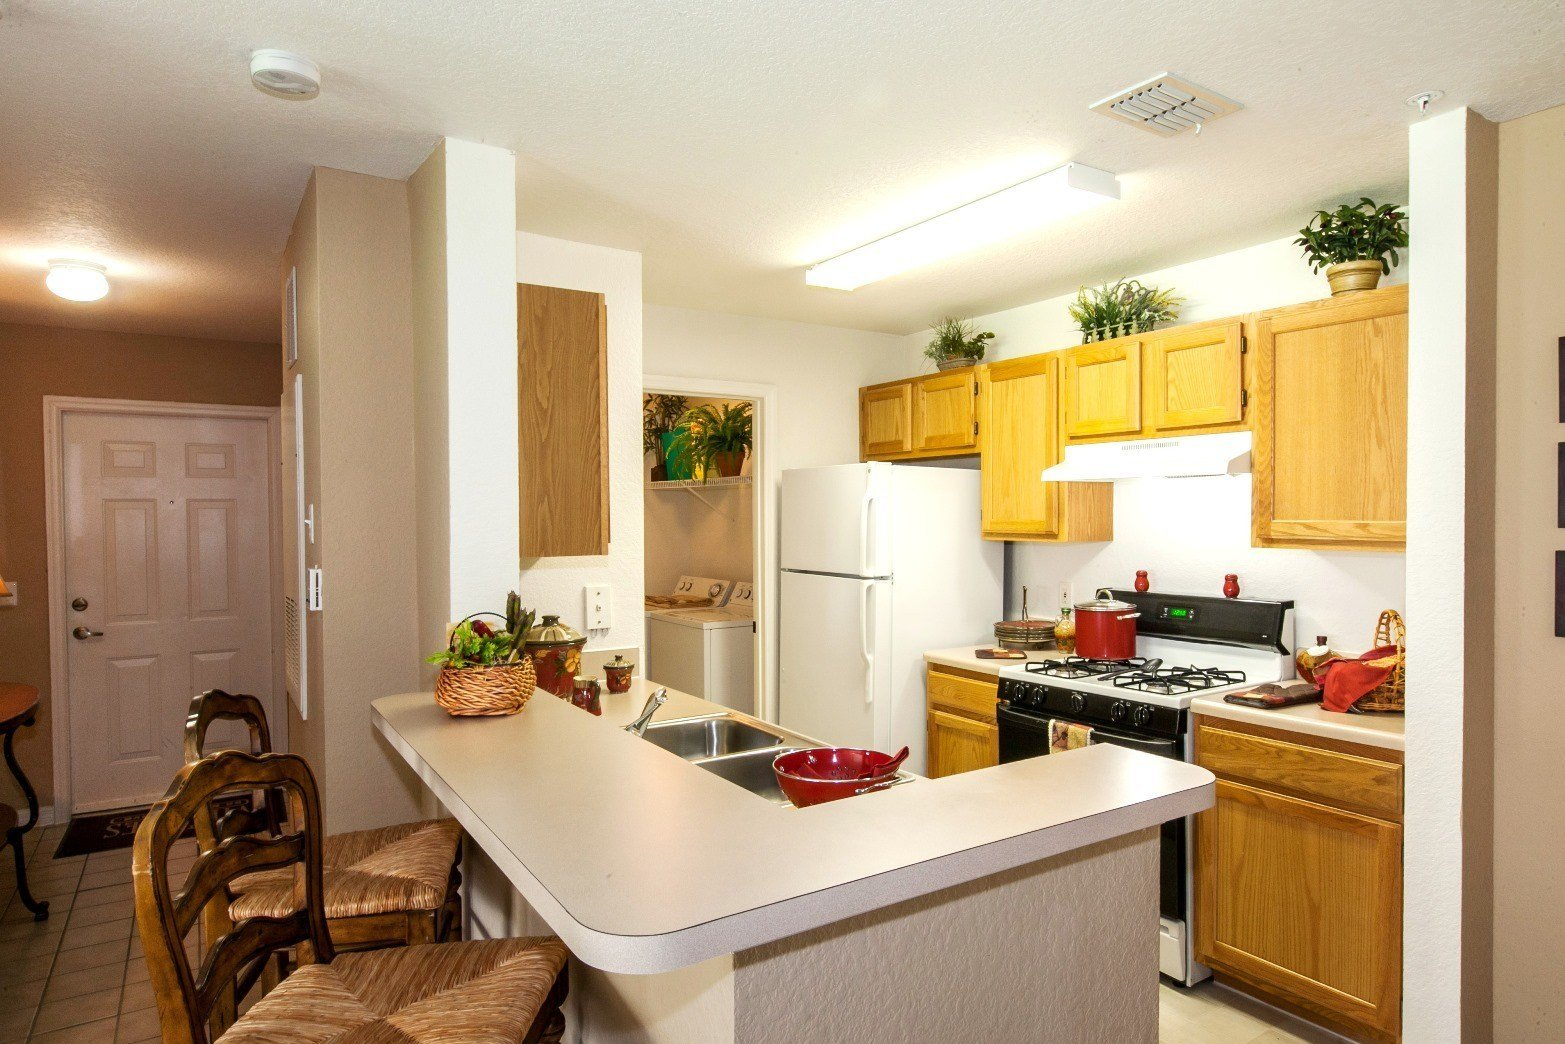 Best Apartments In Lawrenceville Ga Ashton Creek Apartments With Pictures